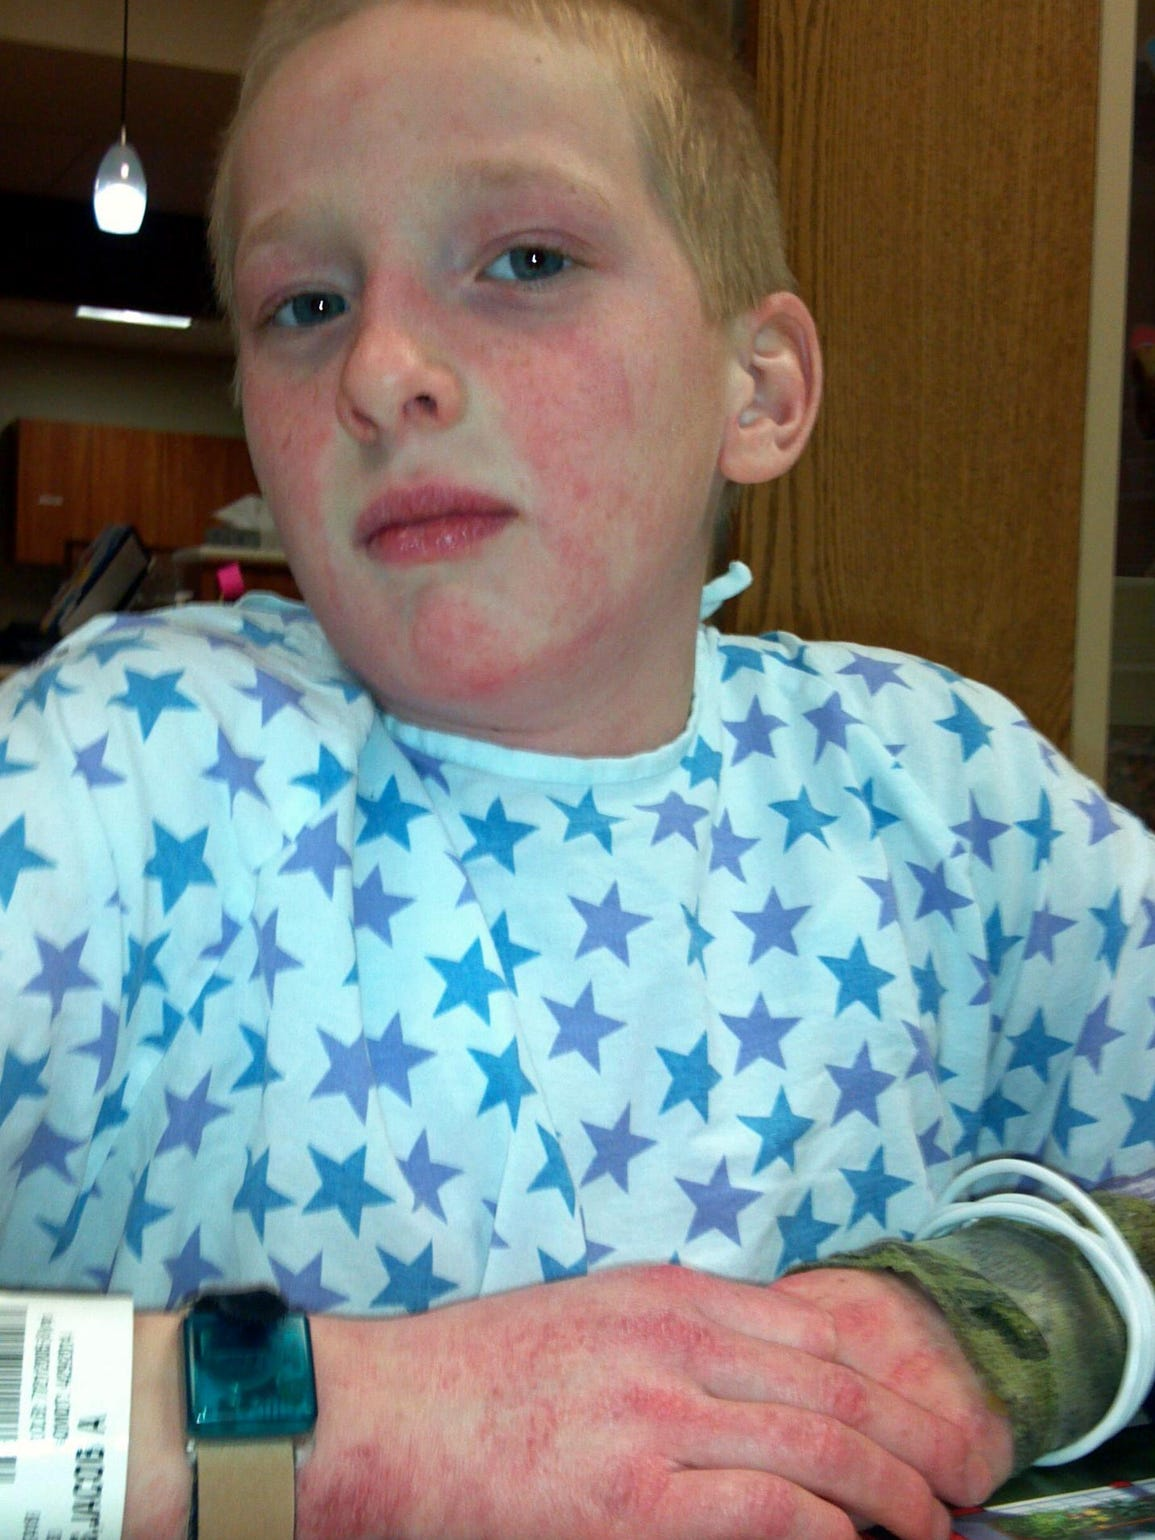 Jacob Reeves is shown in the hospital while being treated